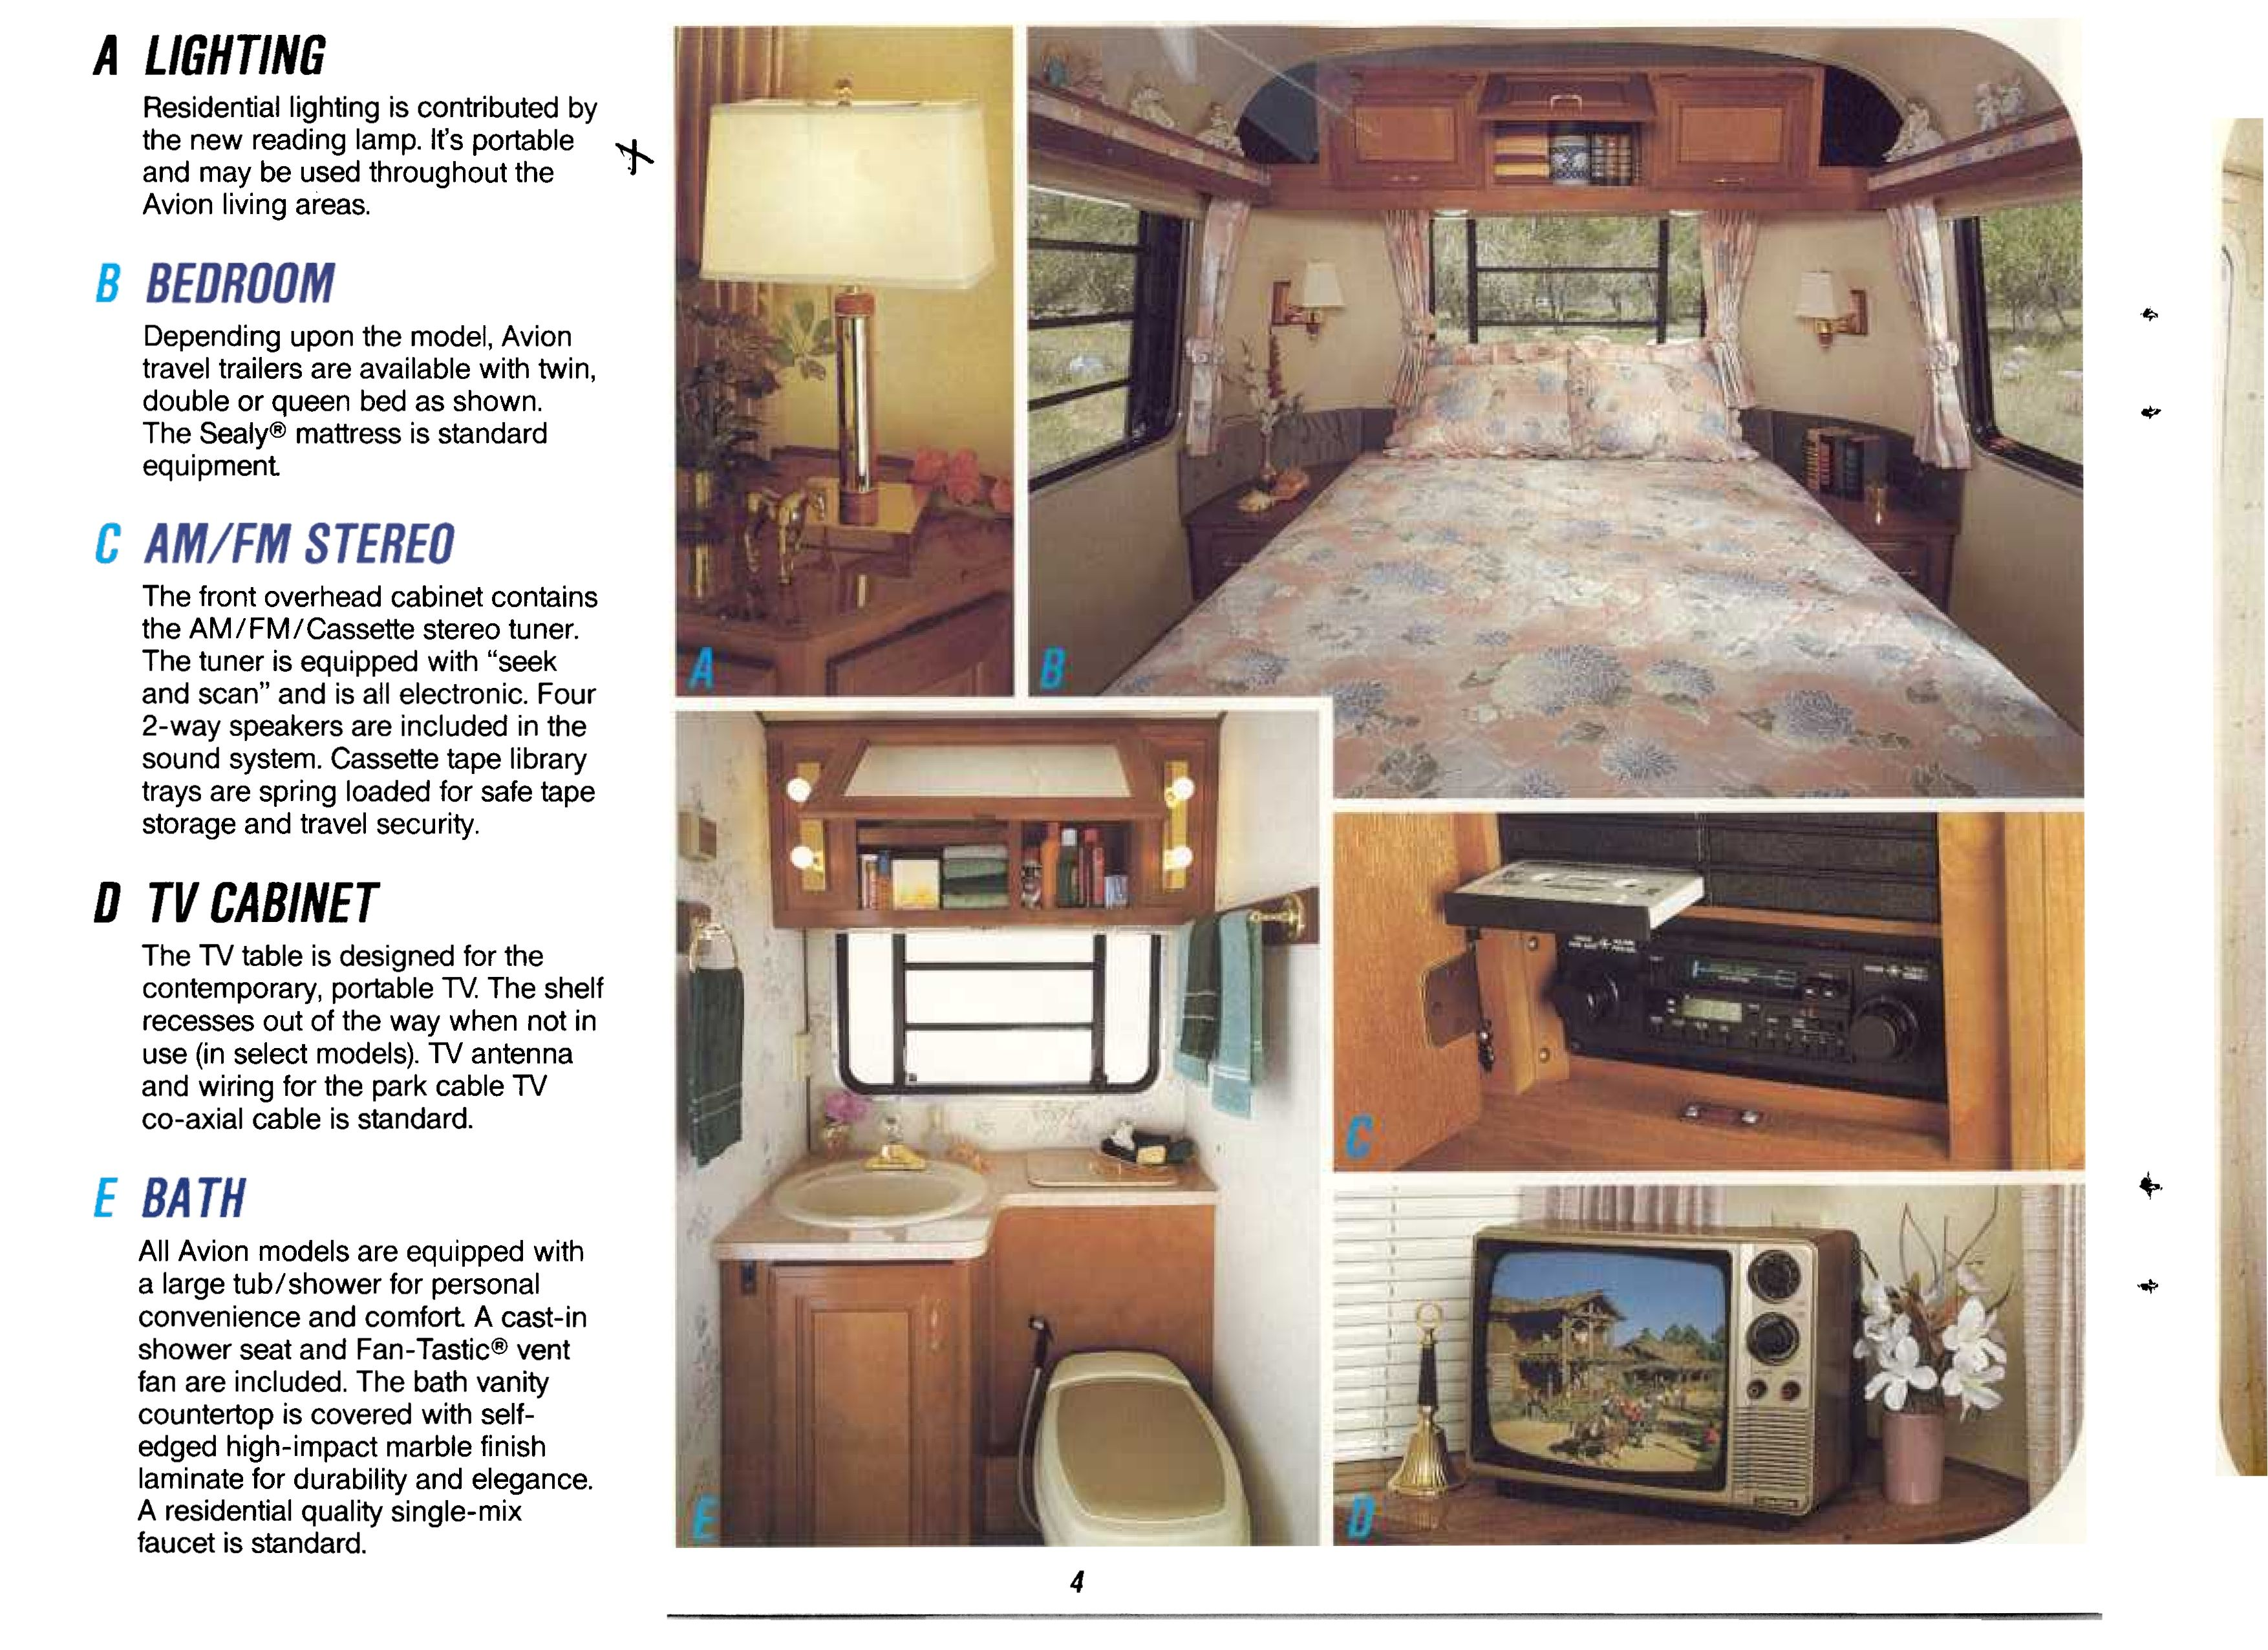 Wilderness Fleetwood 5th Wheel Wiring Diagram 1978 50 6 Wire Circuit Trailer Diagrams Page4 Avion Travelcade Club Travel Former Member Fifth Floor Plans At